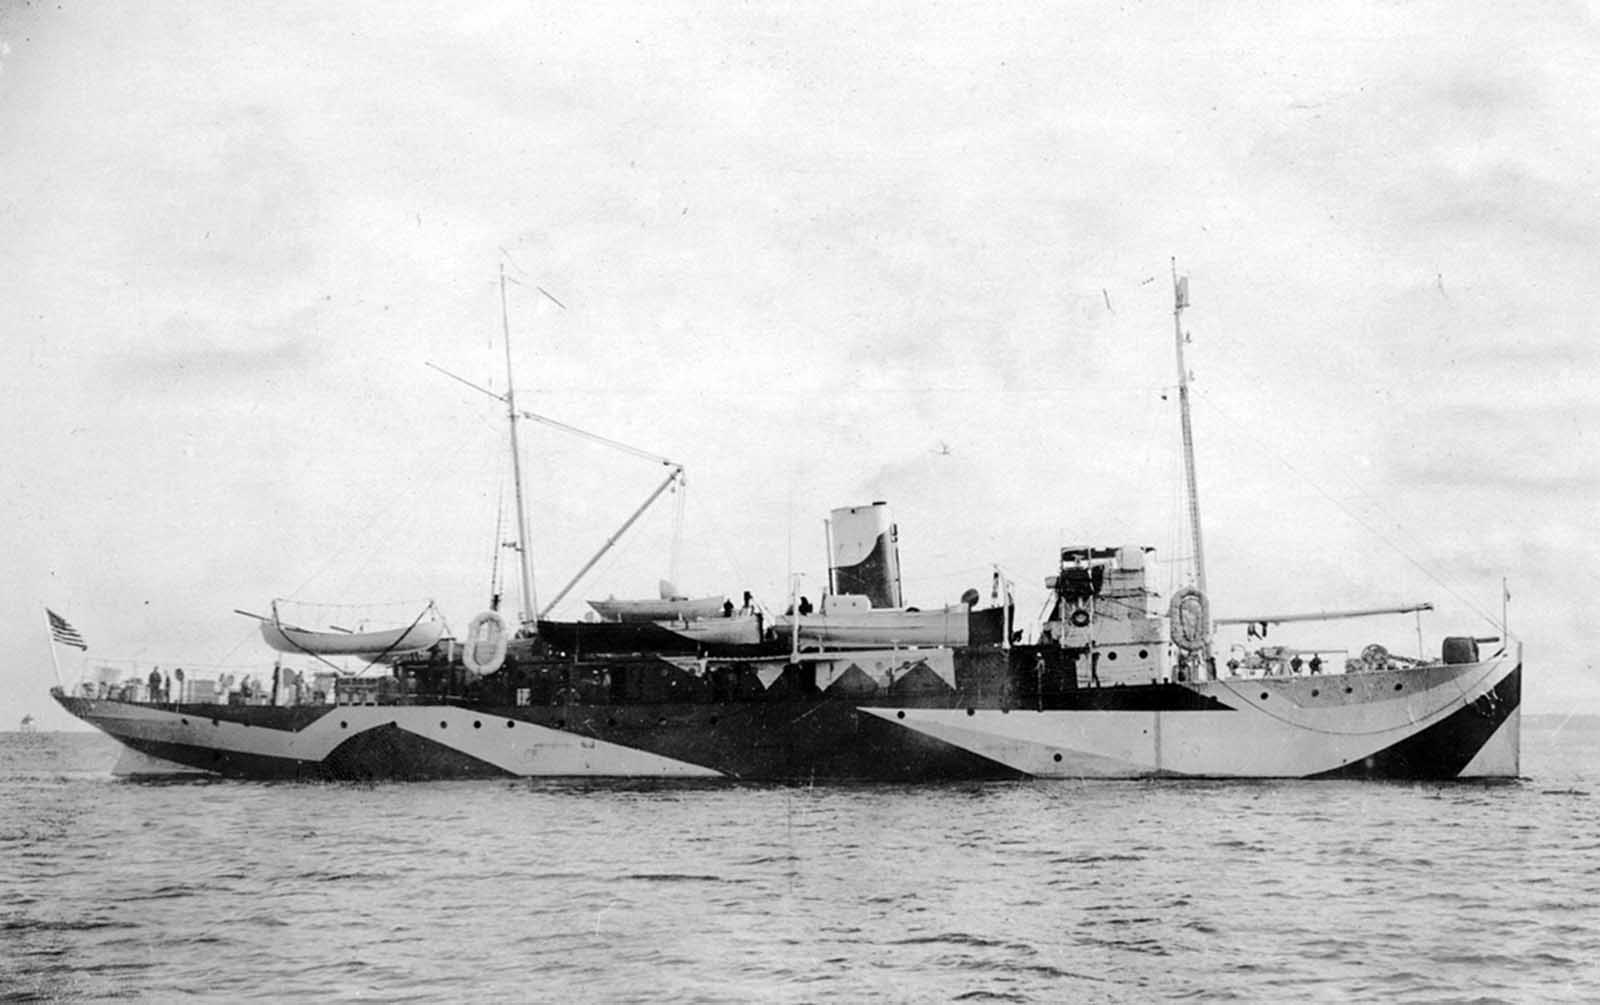 The USS Fulton (AS-1), an American submarine tender painted in Dazzle camouflage, in the Charleston South Carolina Navy Yard on November 1, 1918.